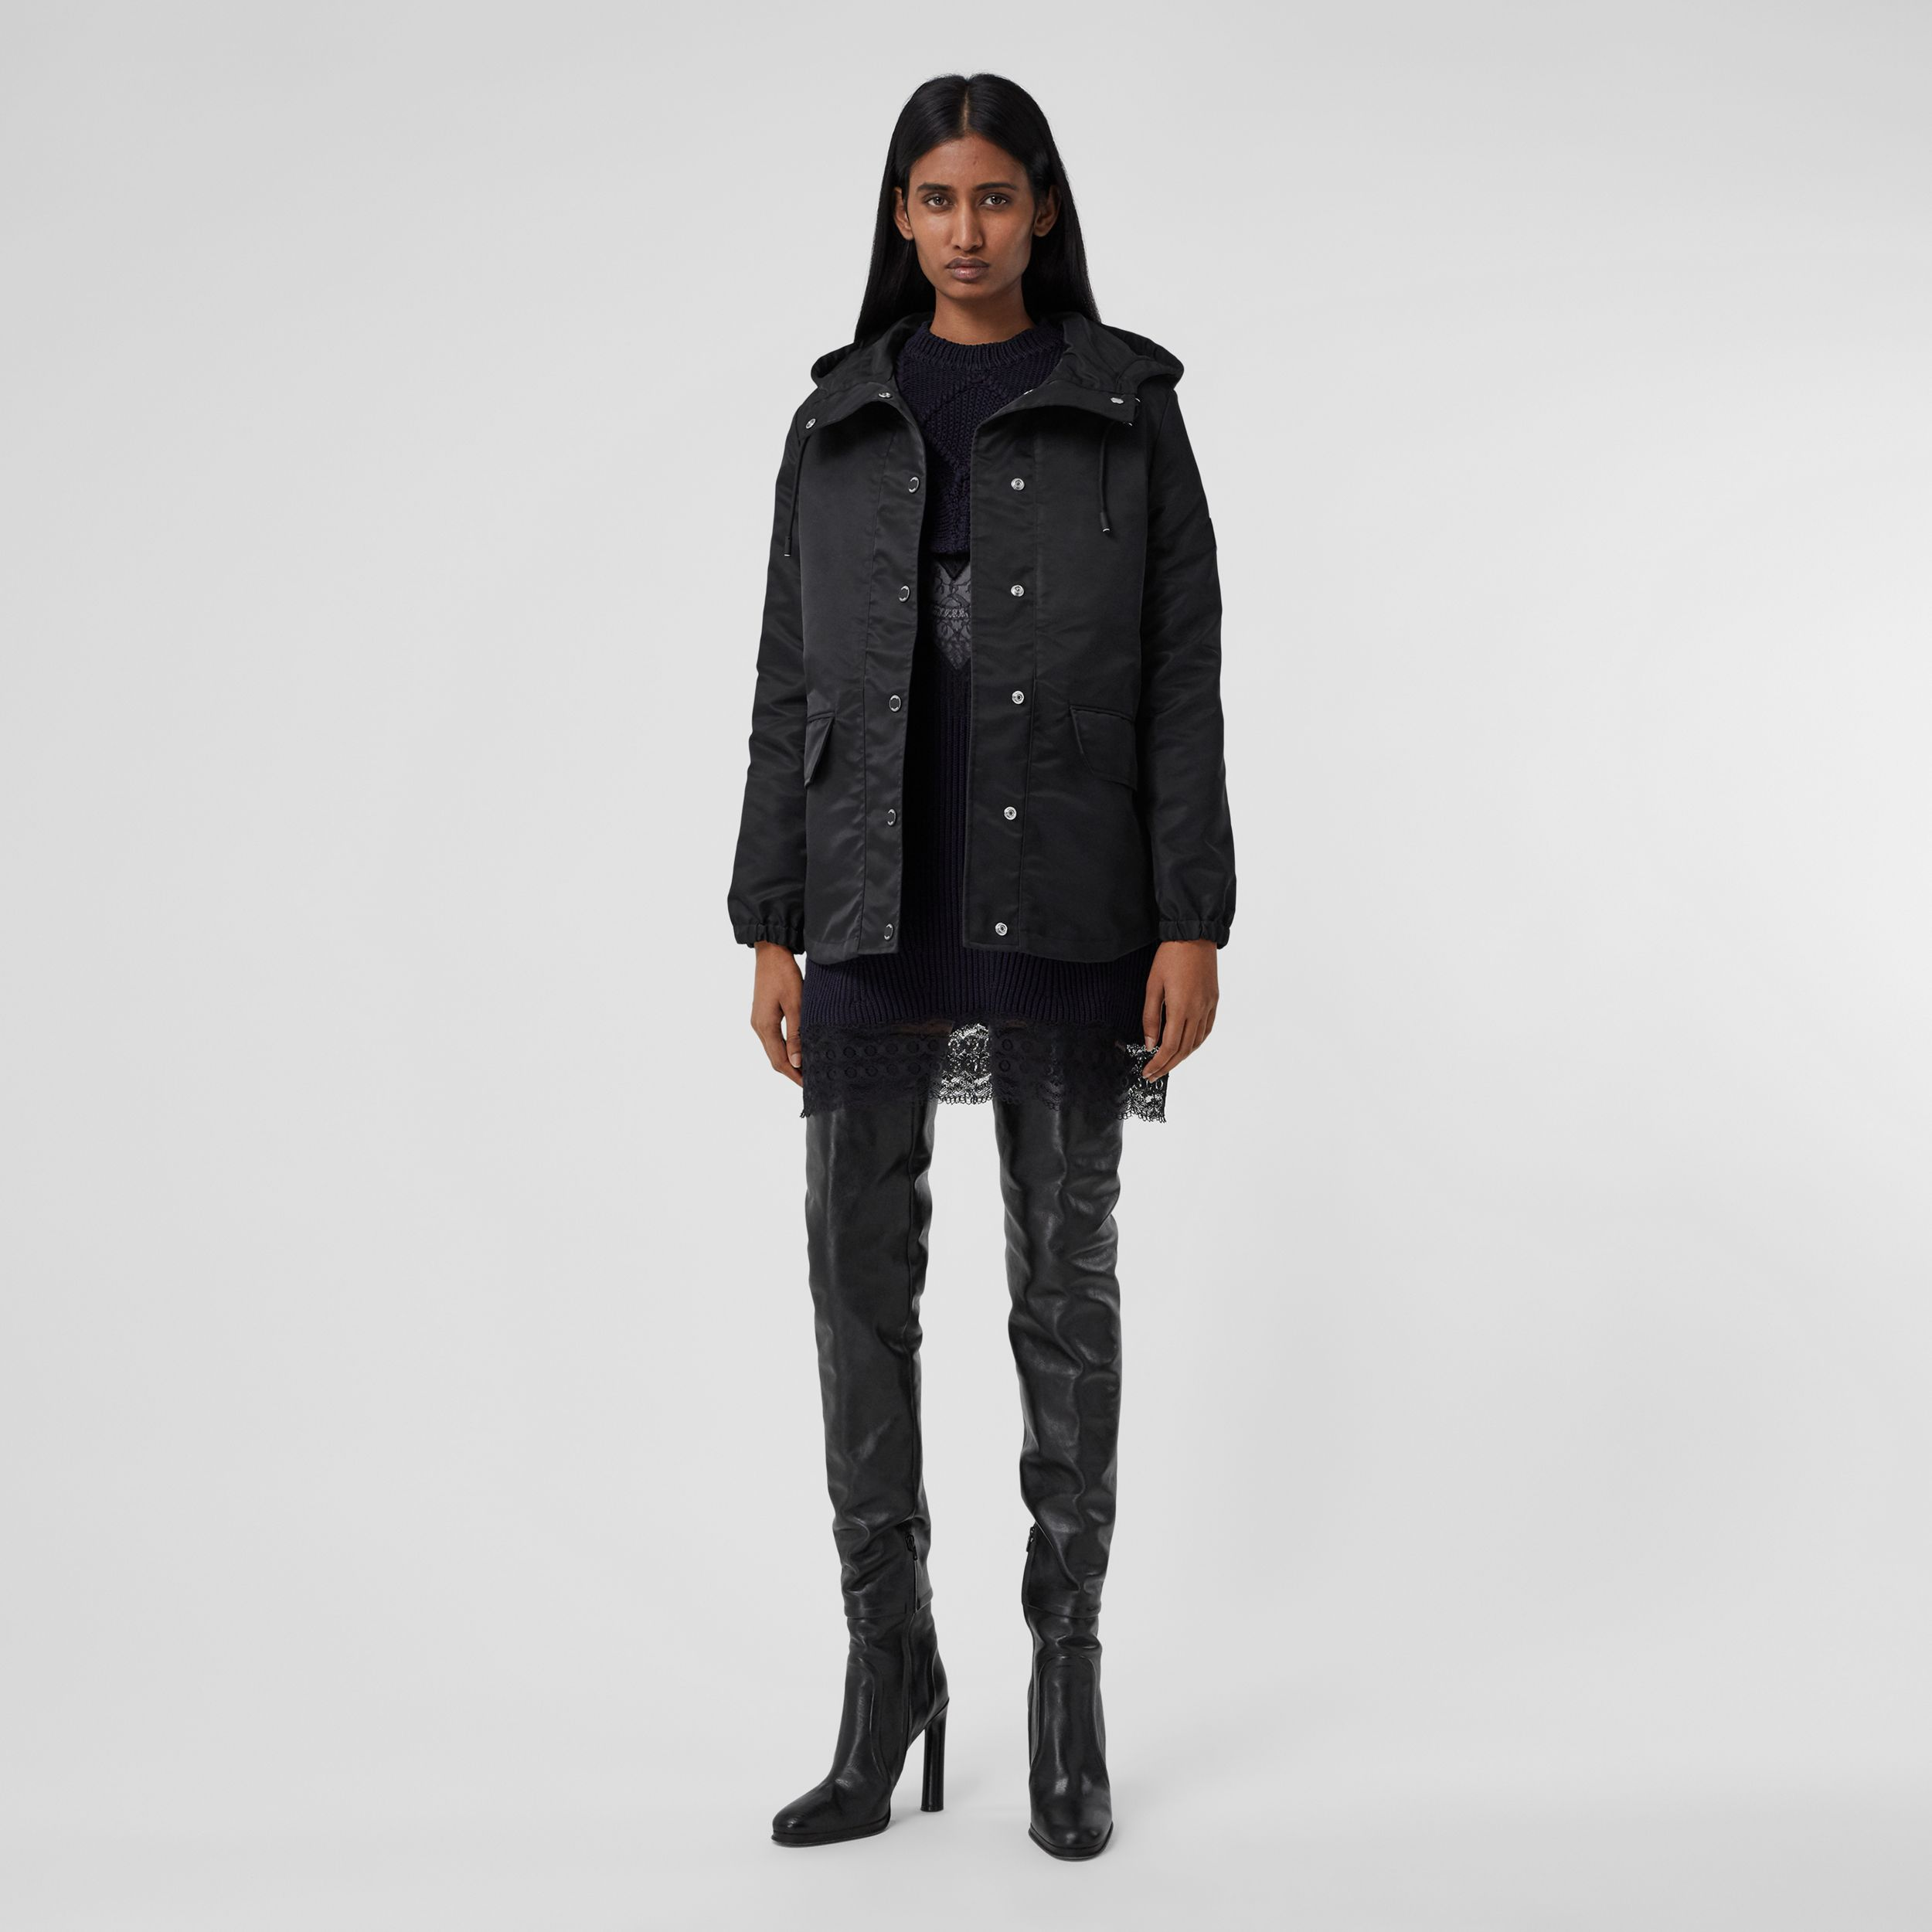 Horseferry Print Lightweight Hooded Parka in Black - Women | Burberry - 1